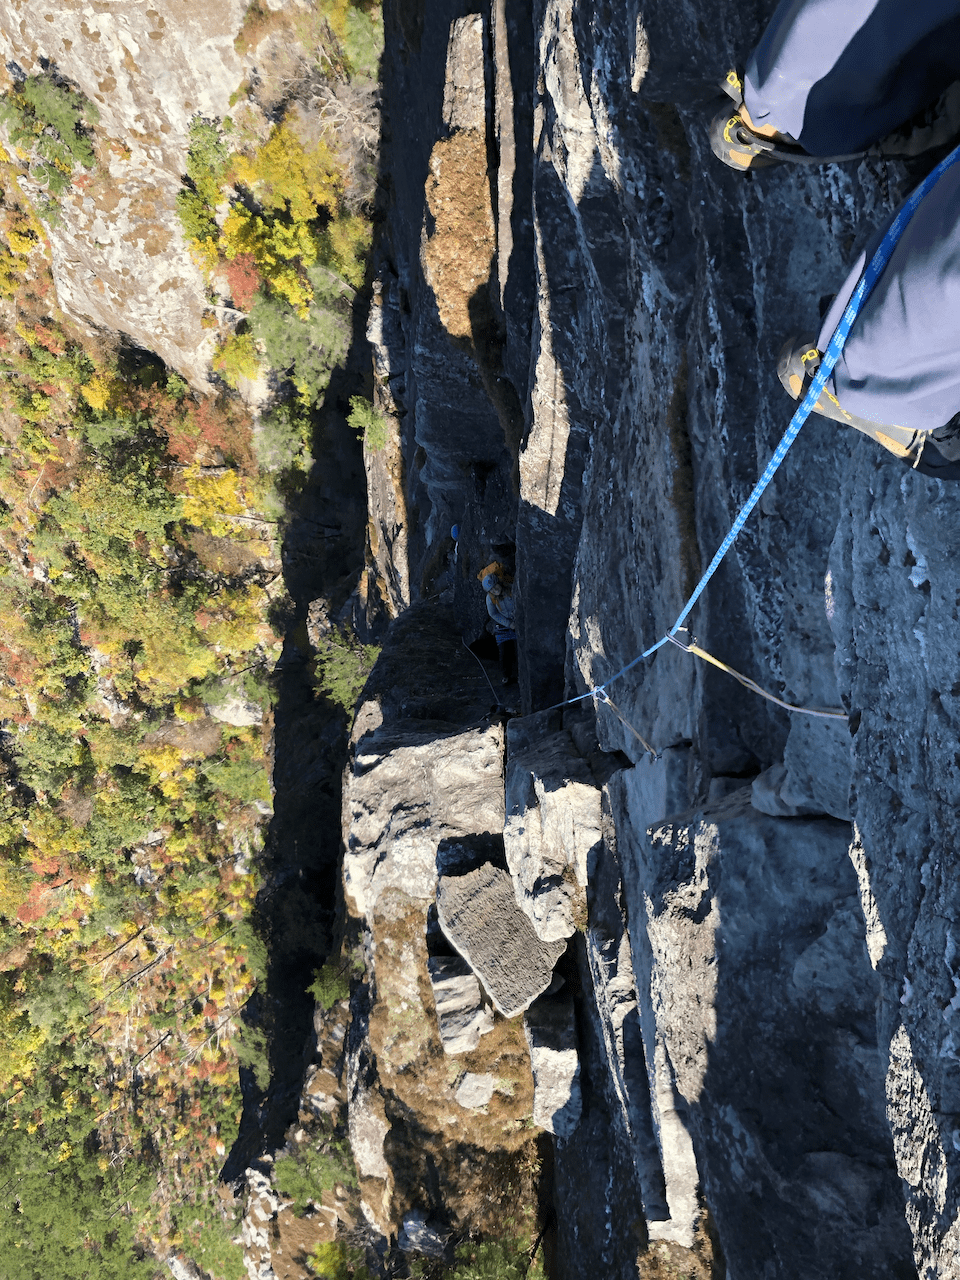 Climber Looking Down A Multi Pitch Climbing Route